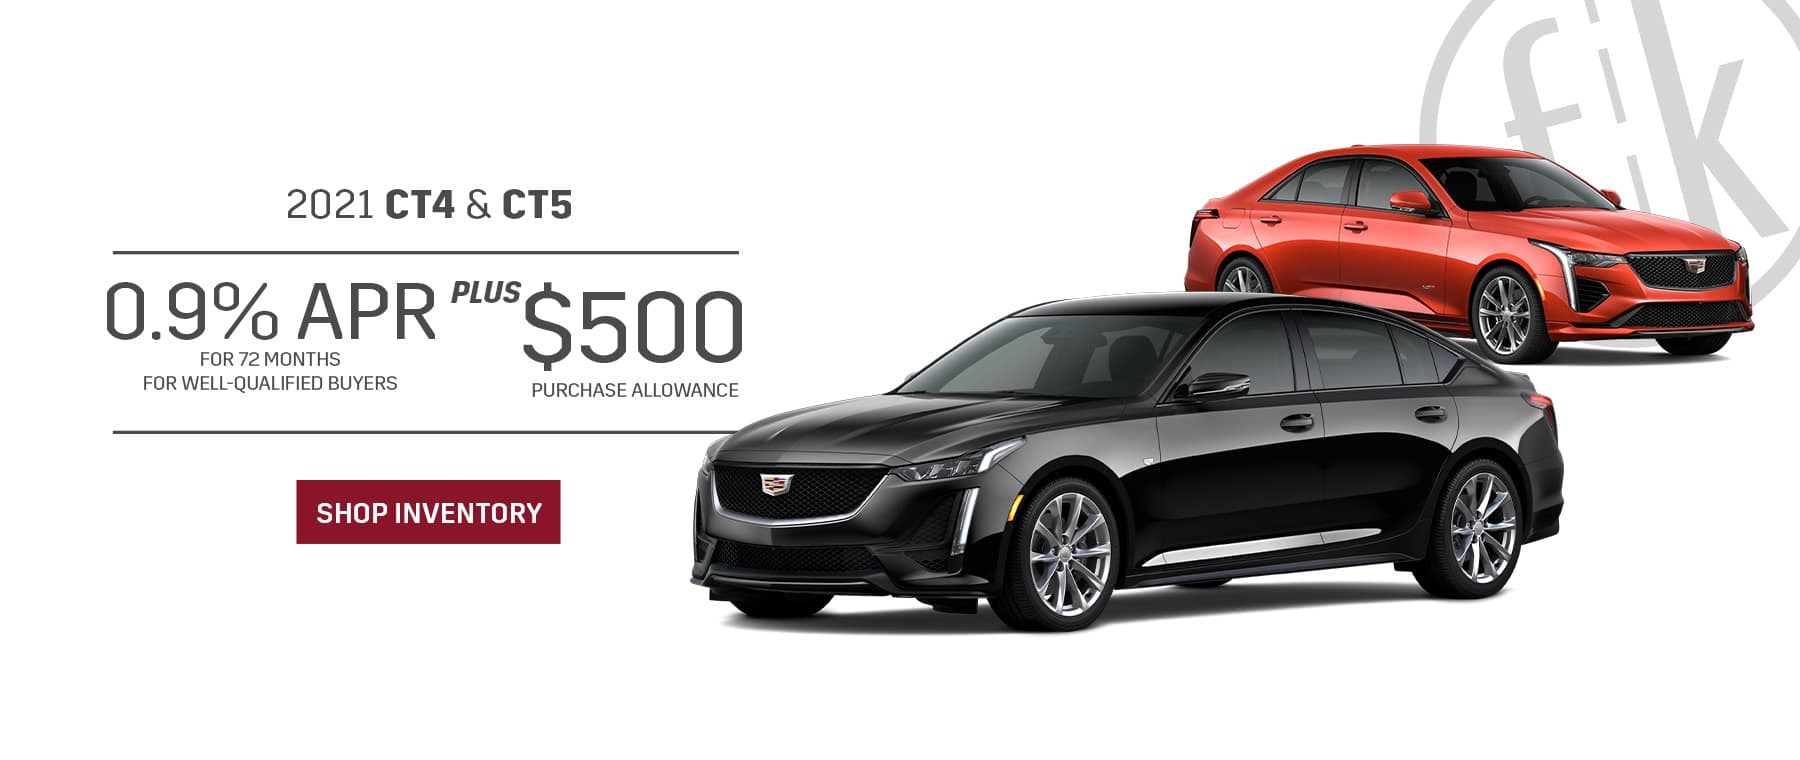 2021 CT4 & CT5 0.9% for 72 mos PLUS $500 Purchase Allowance